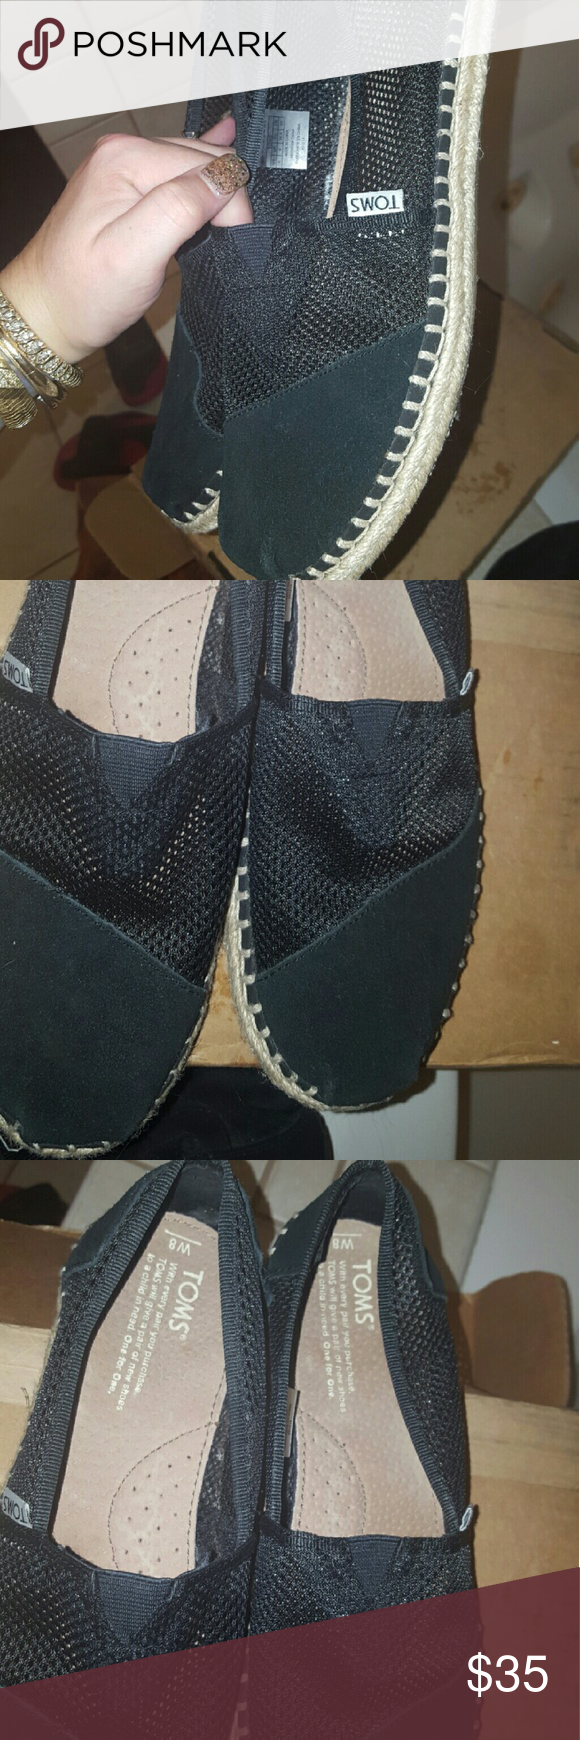 Toms flats mesh & suede size 8 NEW Toms flats mesh & suede size 8 NEW TOMS Shoes Flats & Loafers